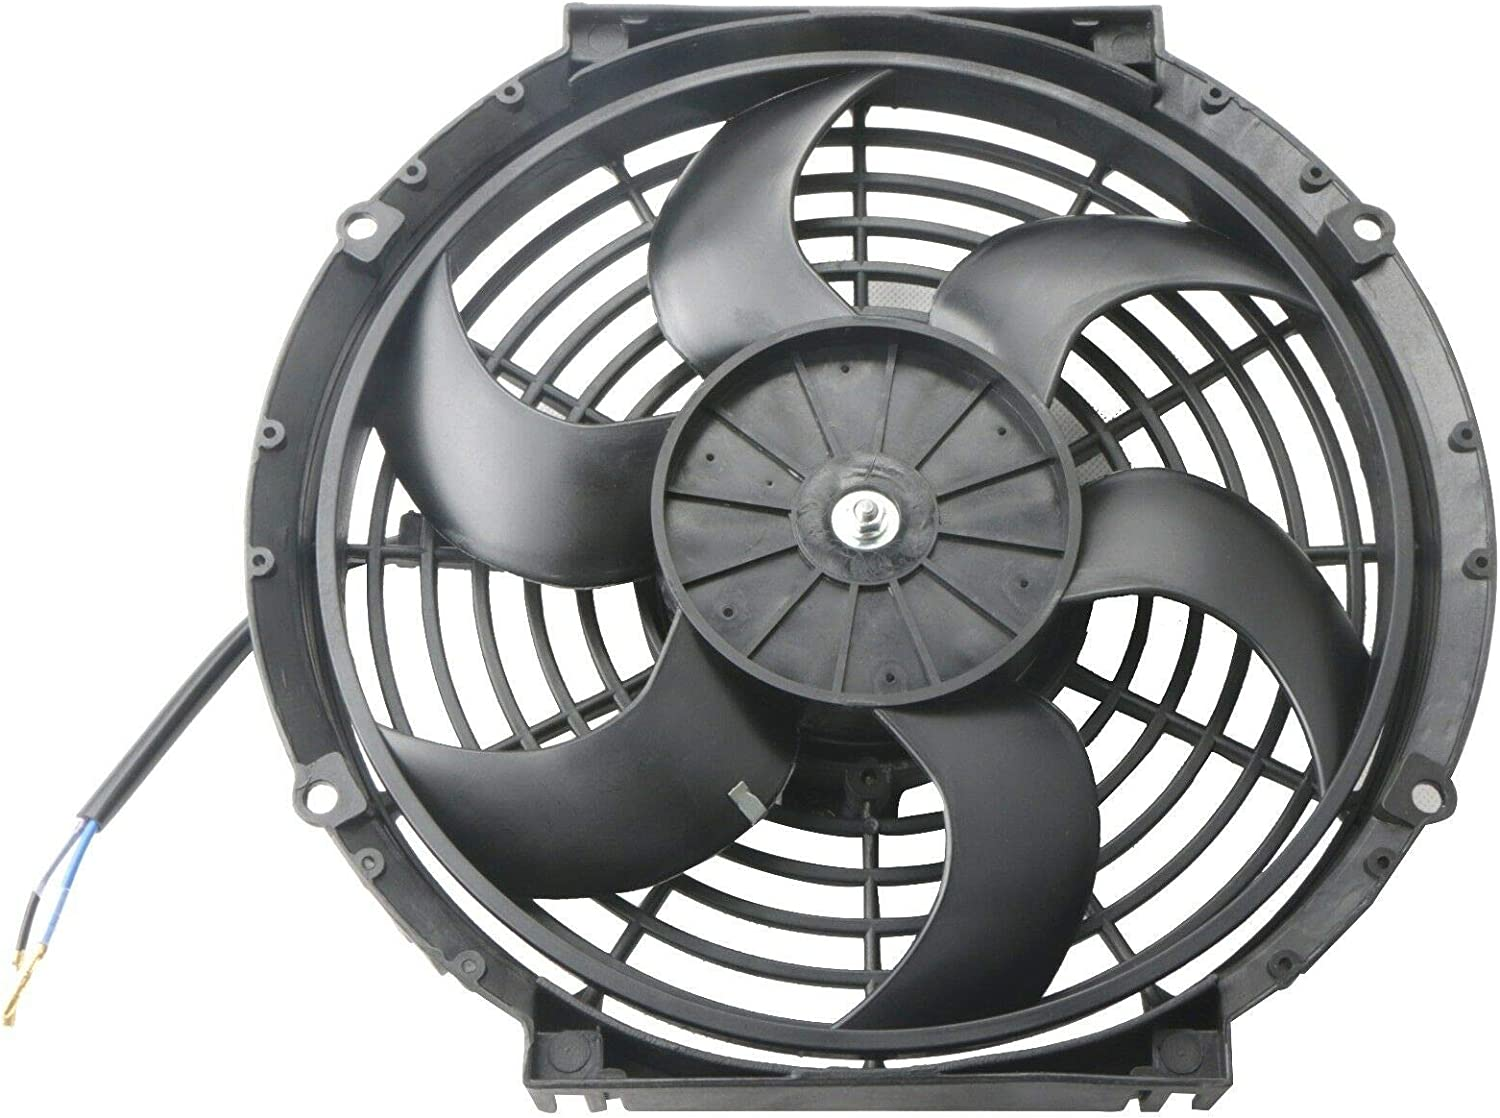 Fan Mounting Kit 12, Red LTI Universal High Performance S Blade Pull//Push 12V Slim Electric Cooling Radiator Fan